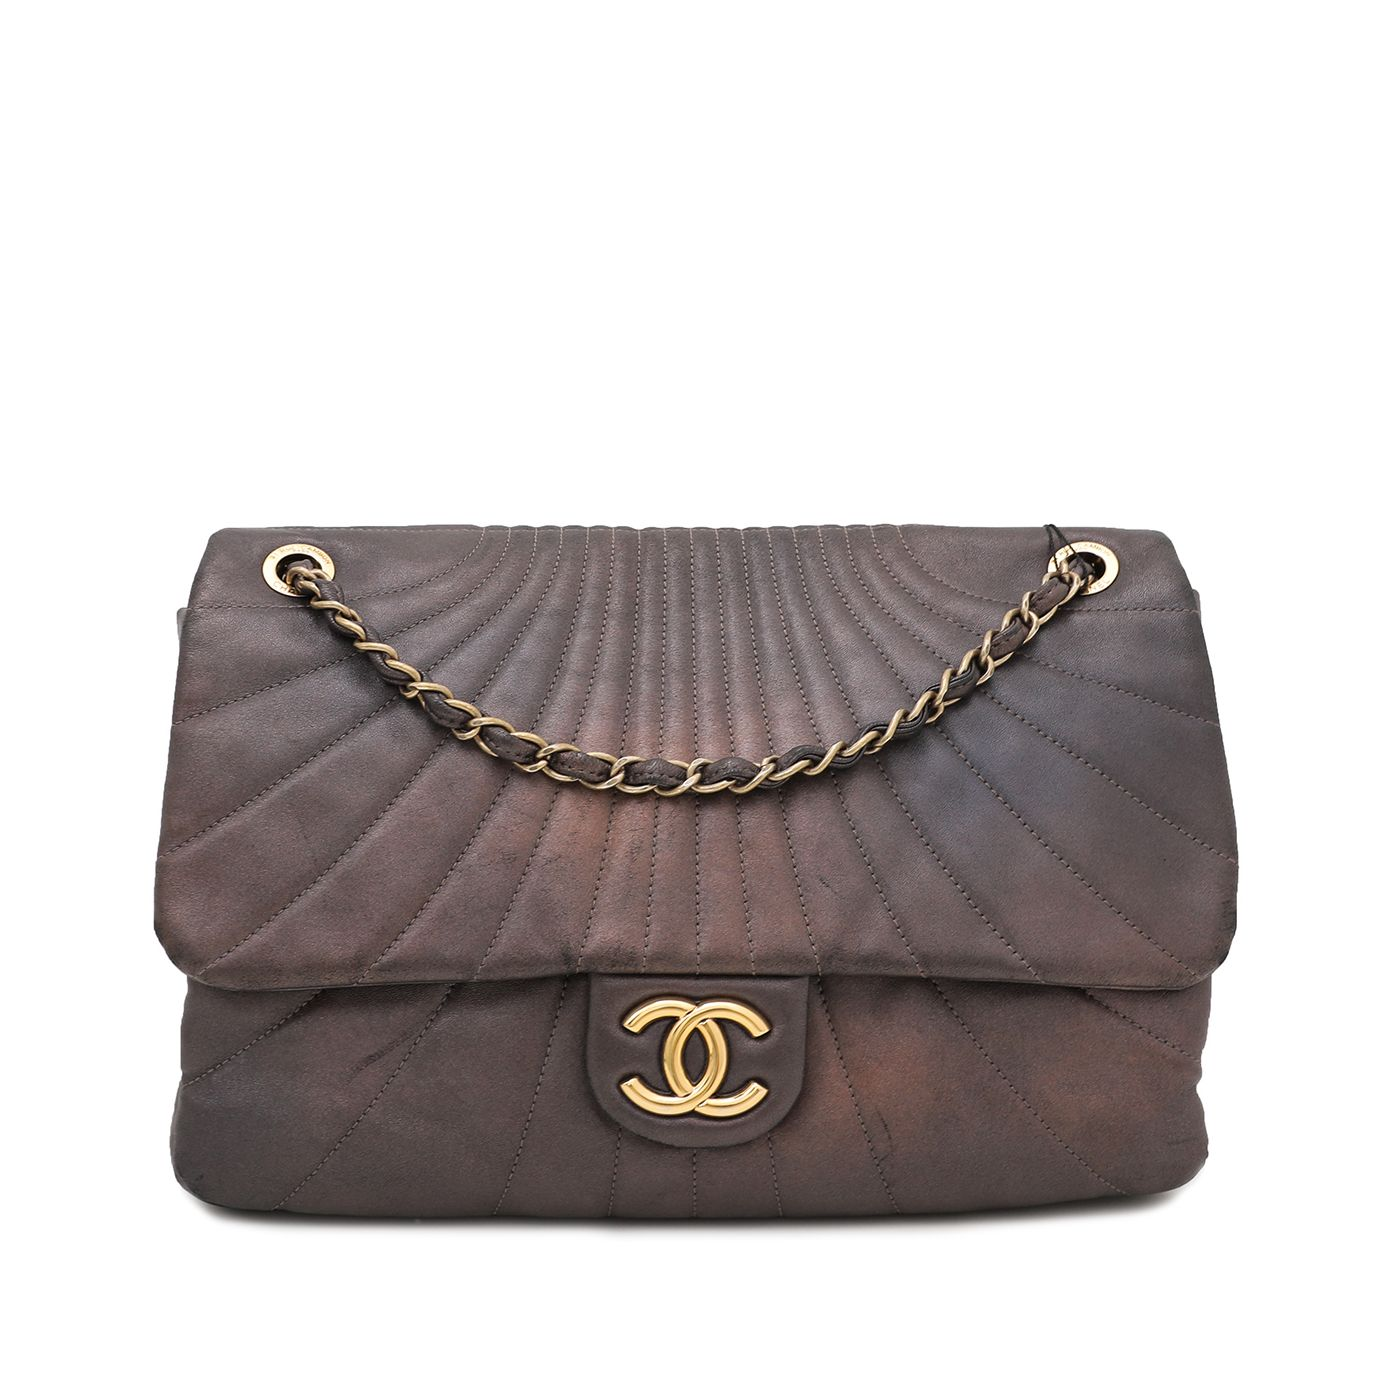 Chanel Metallic Bronze Curved Quilt Flap Bag